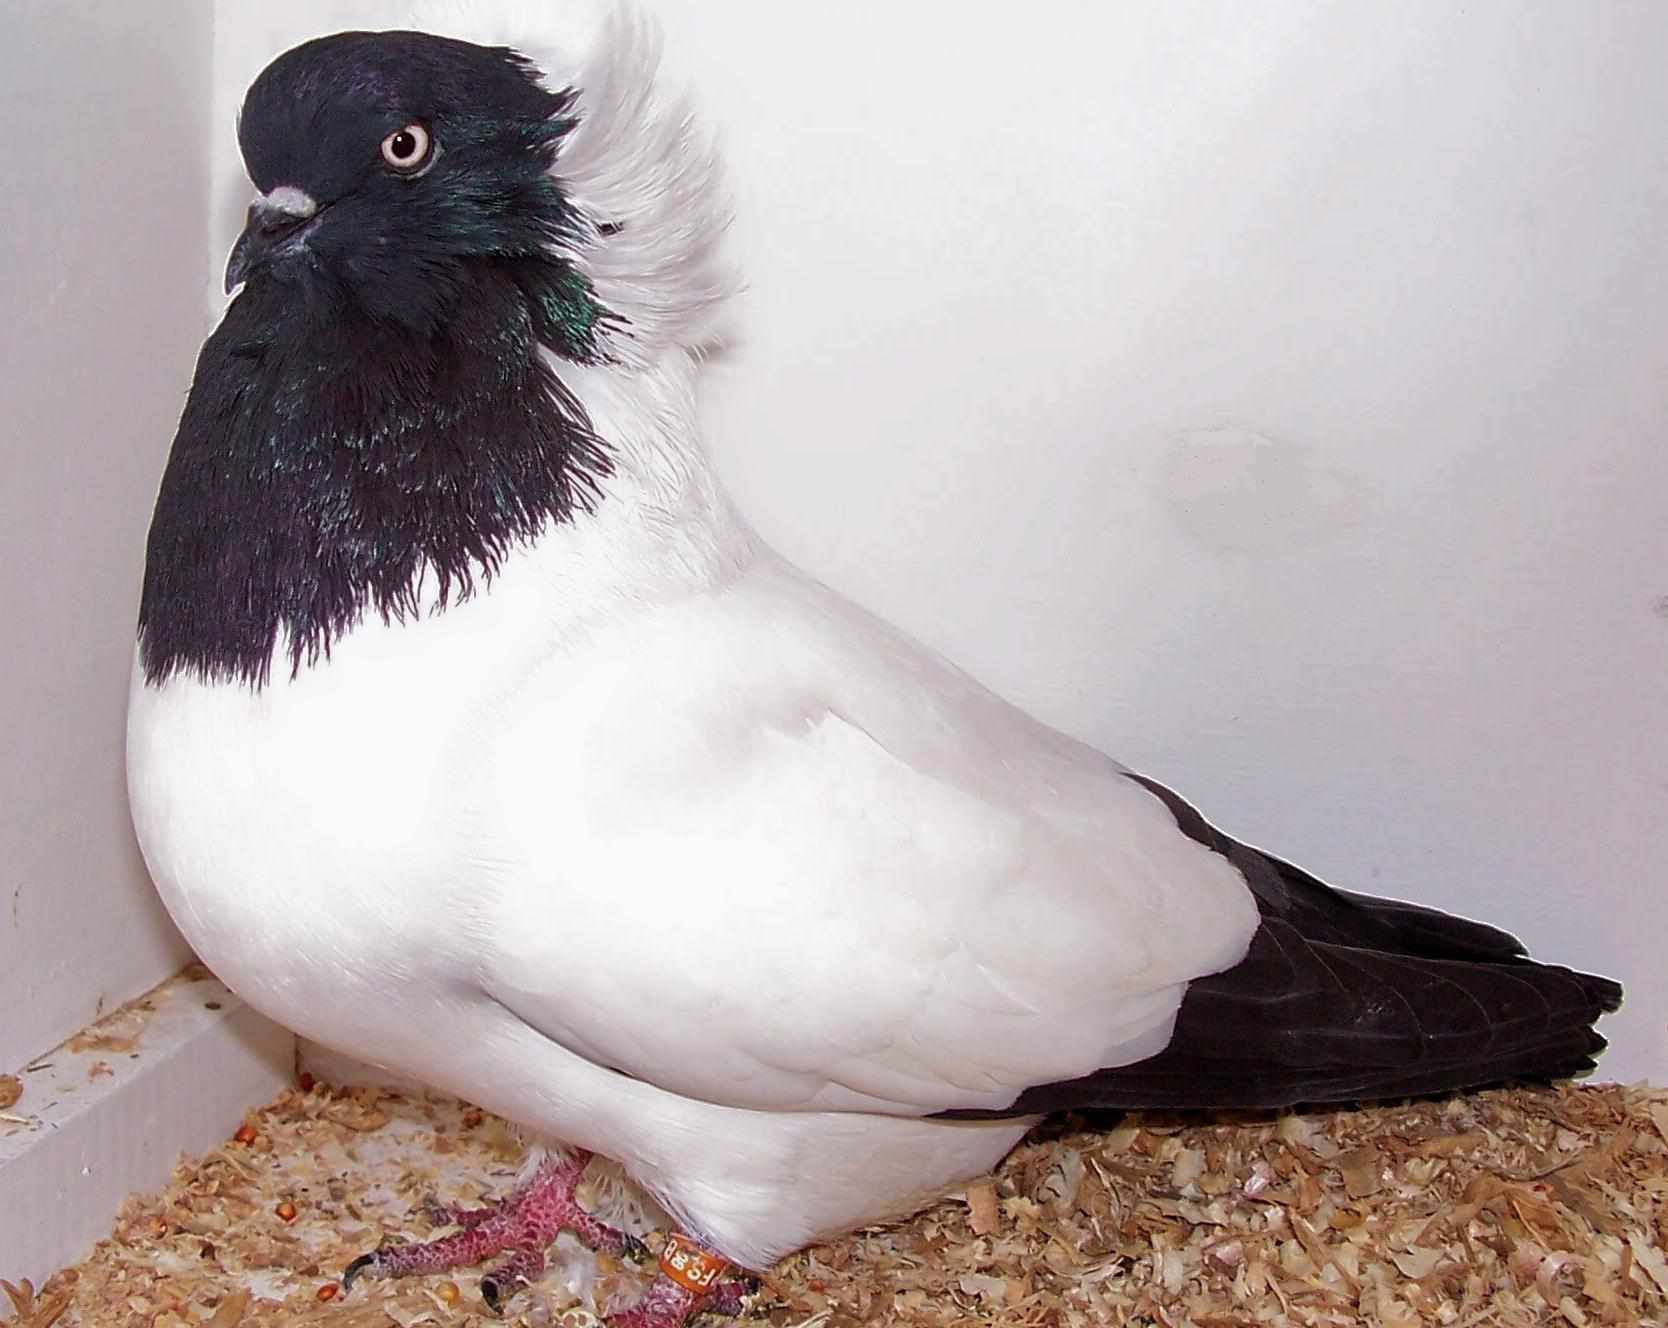 Nun pigeon standing against a wall on sawdust